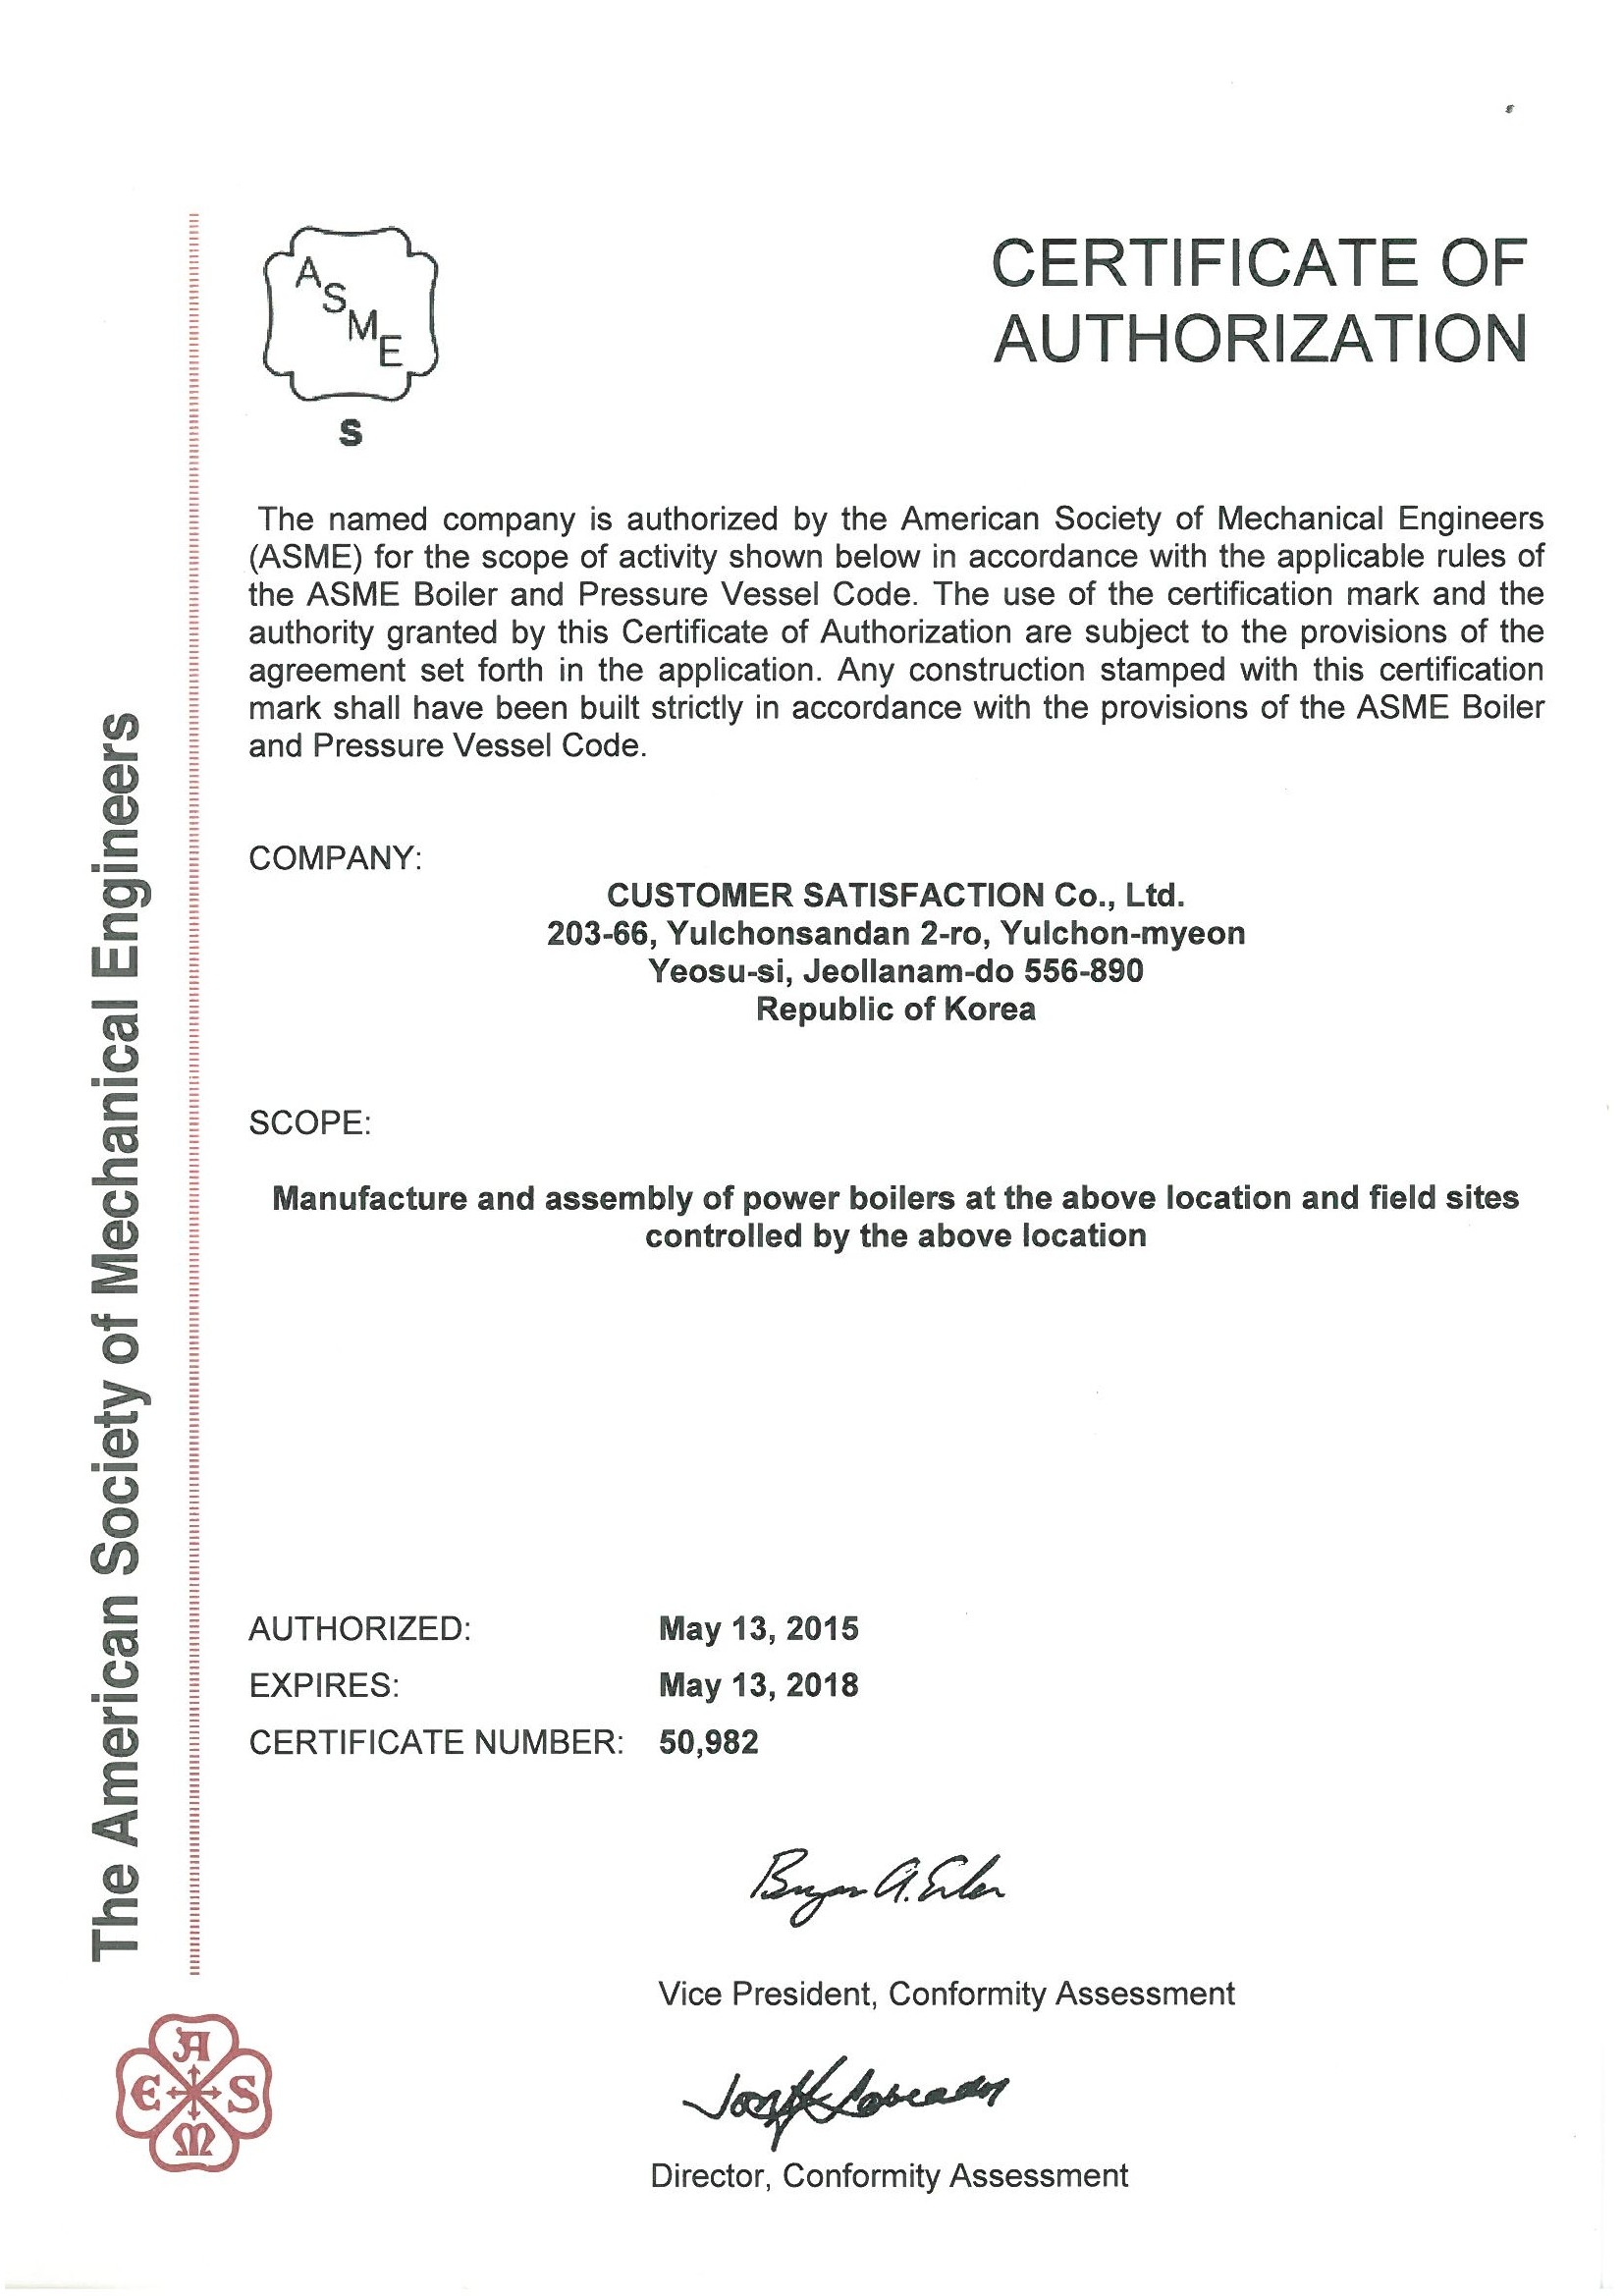 CS Certification ASME S Stamp Certificate